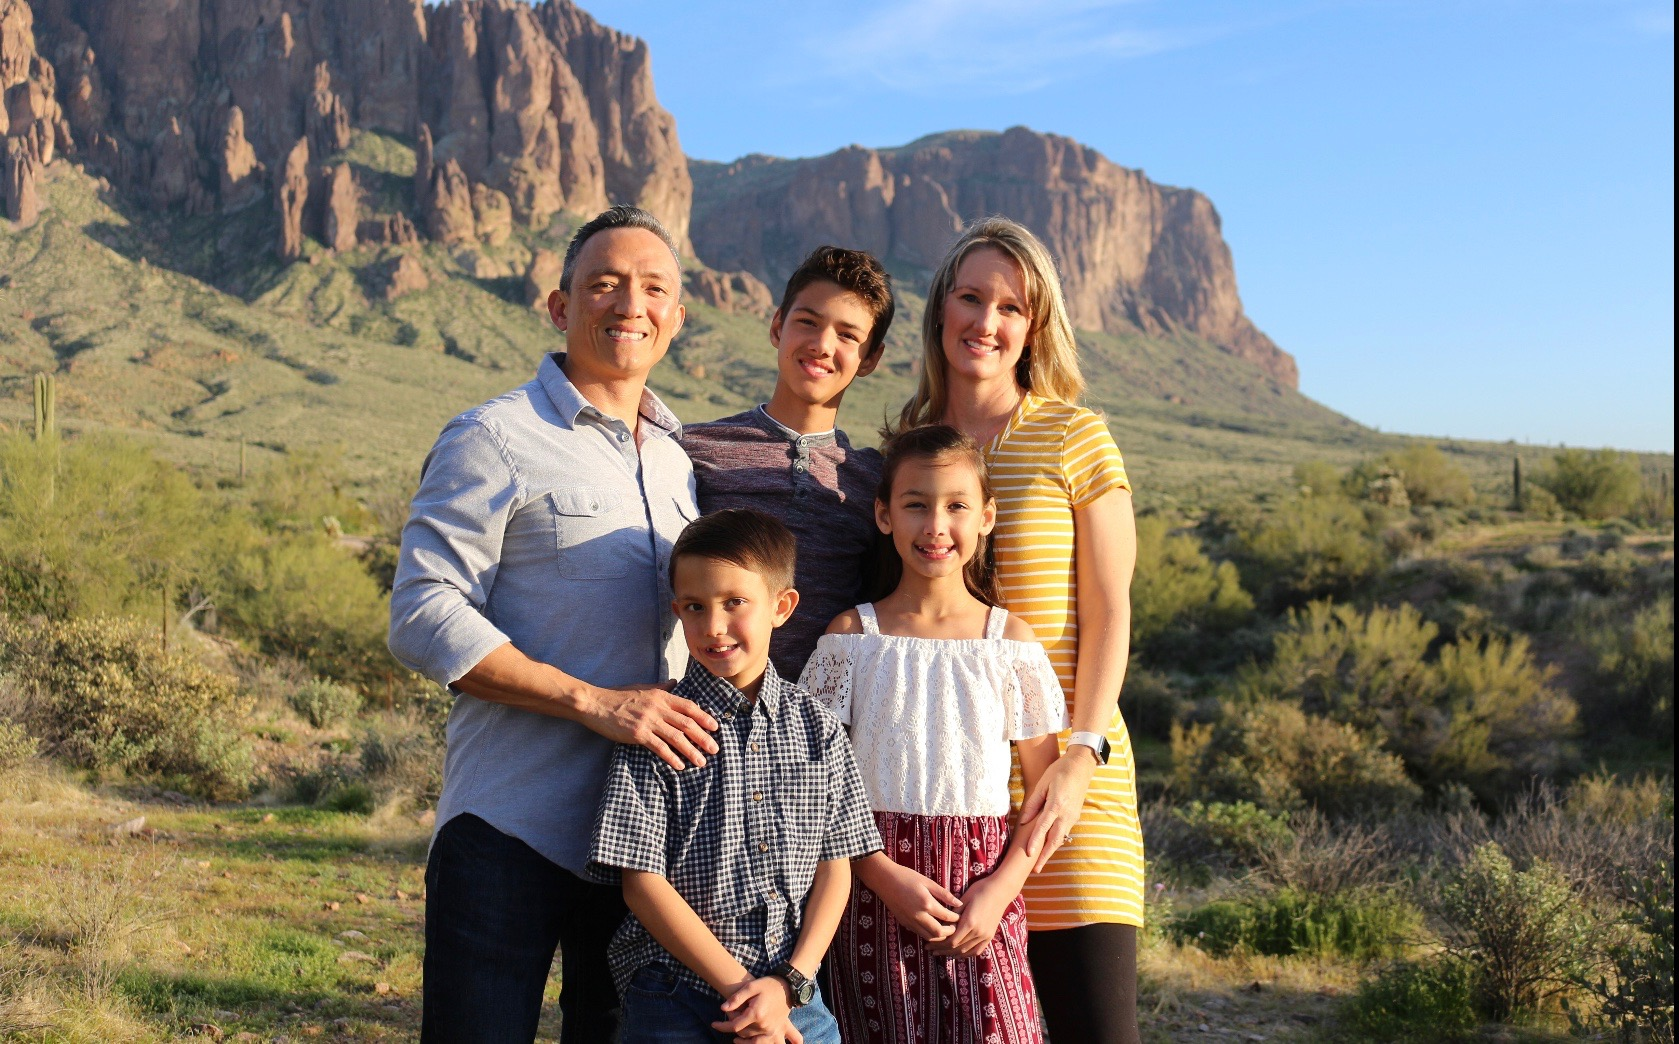 Leah Ruiz, family in front of moutain